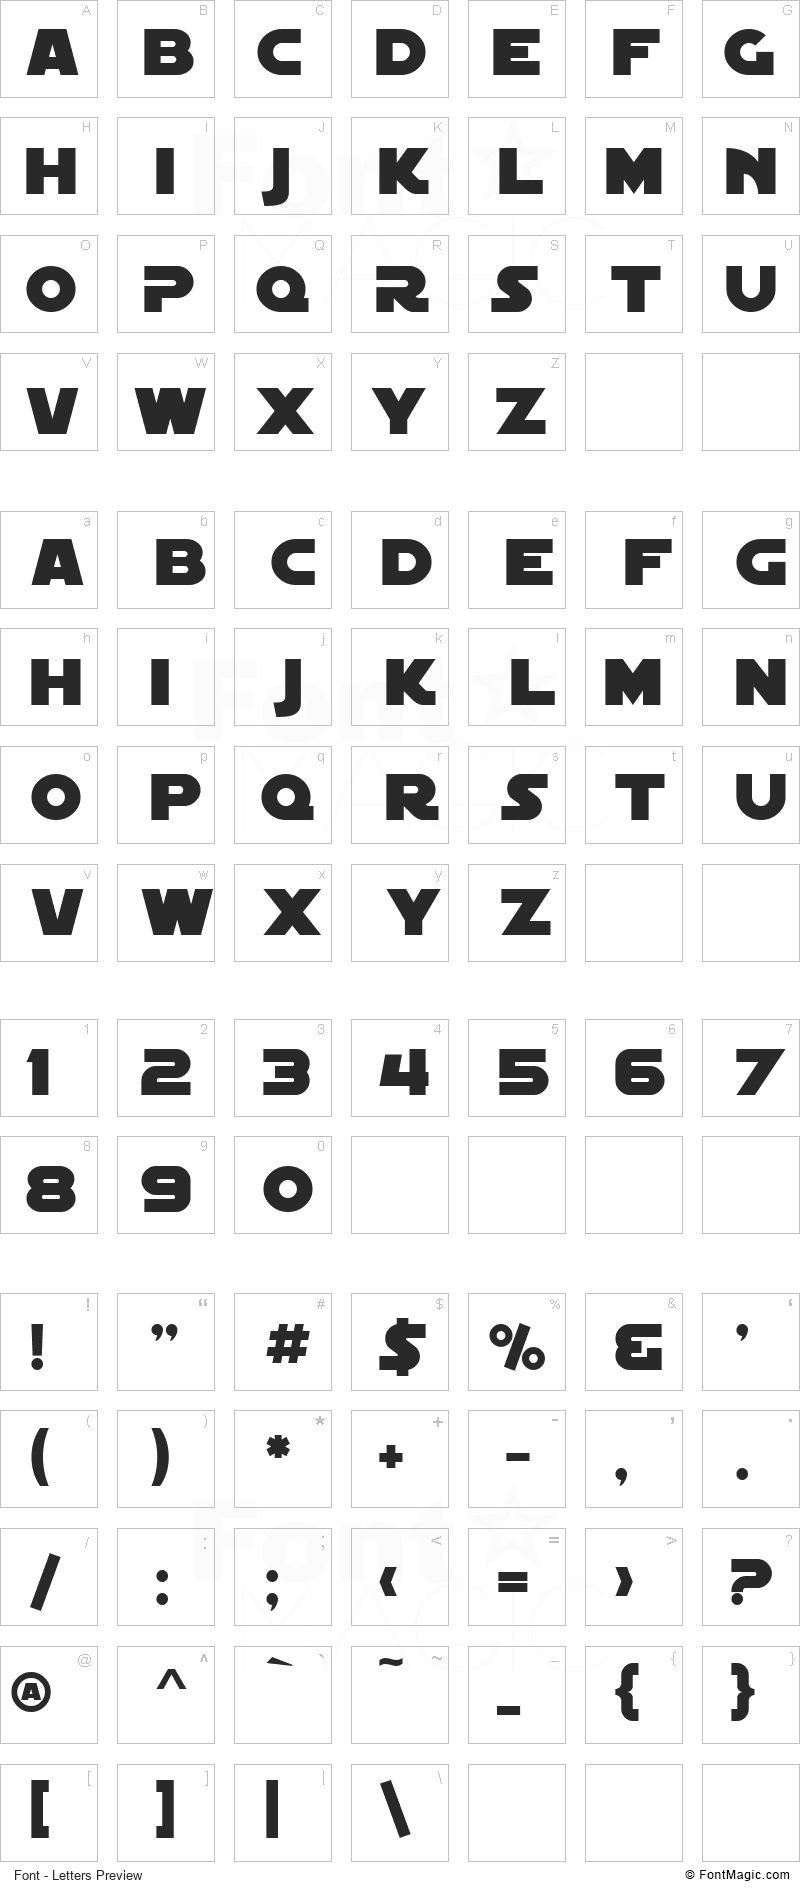 SF Distant Galaxy Font - All Latters Preview Chart